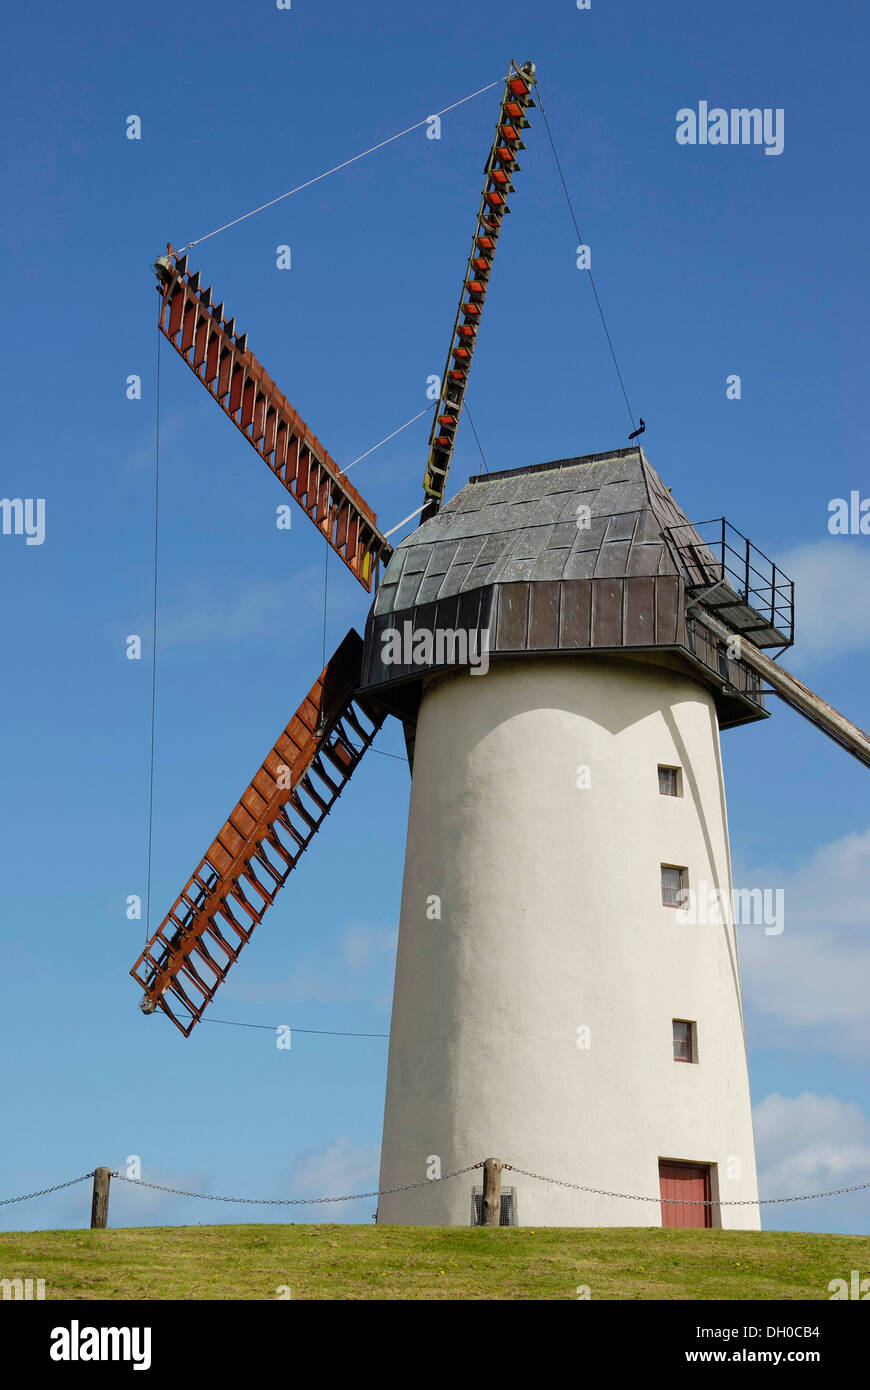 5-wing windmill with moving rotor tower at Skerries, County Dublin, Republik of Ireland, Europe - Stock Image